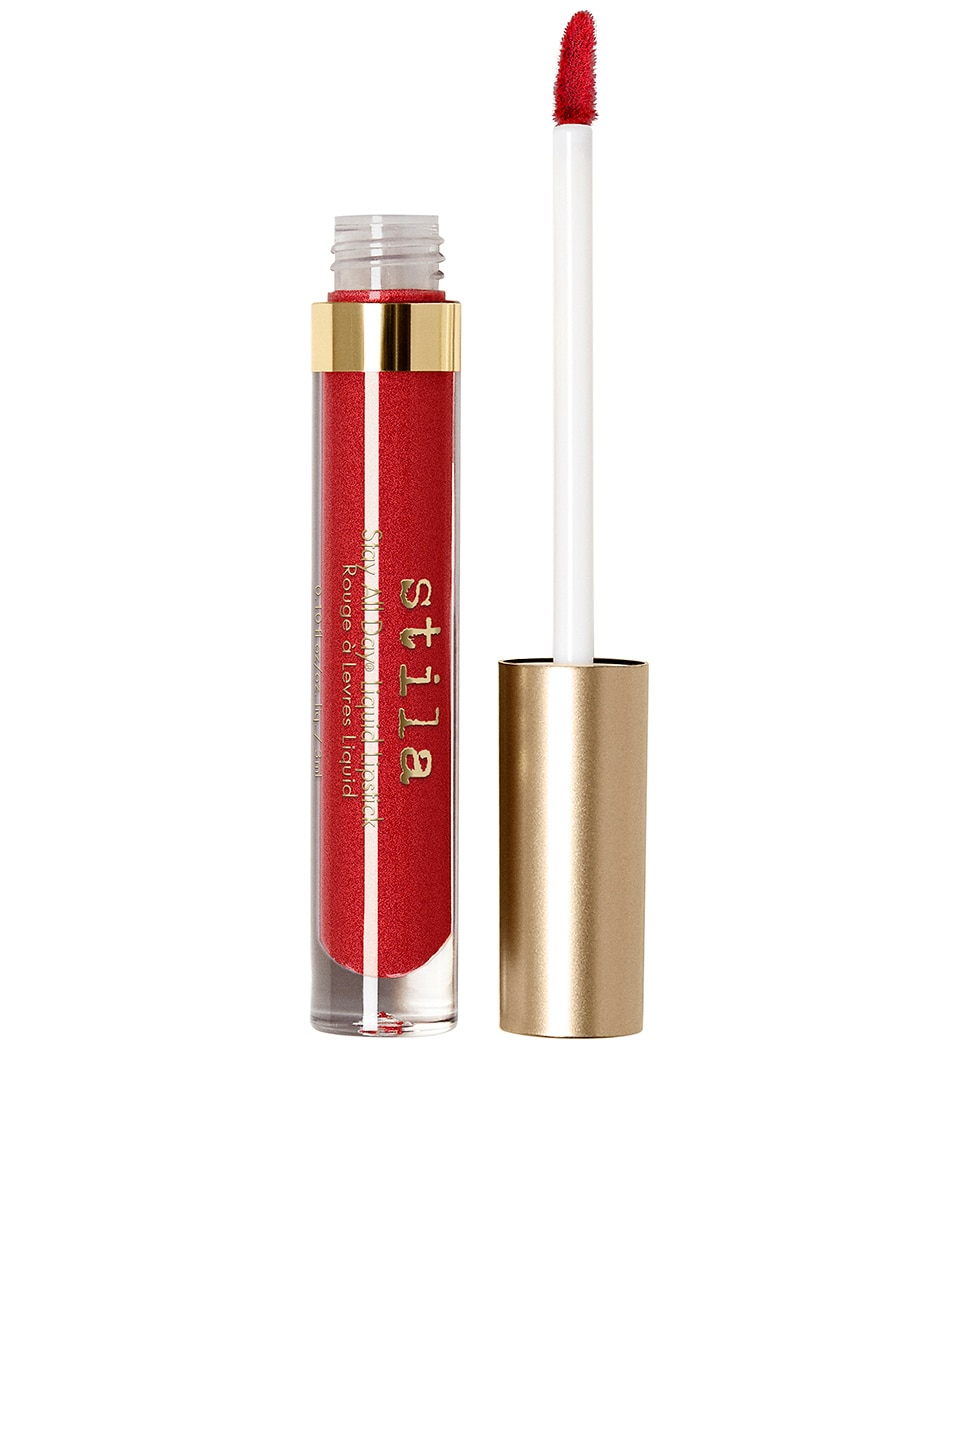 Stila Stay All Day Shimmer Liquid Lipstick in Beso Shimmer